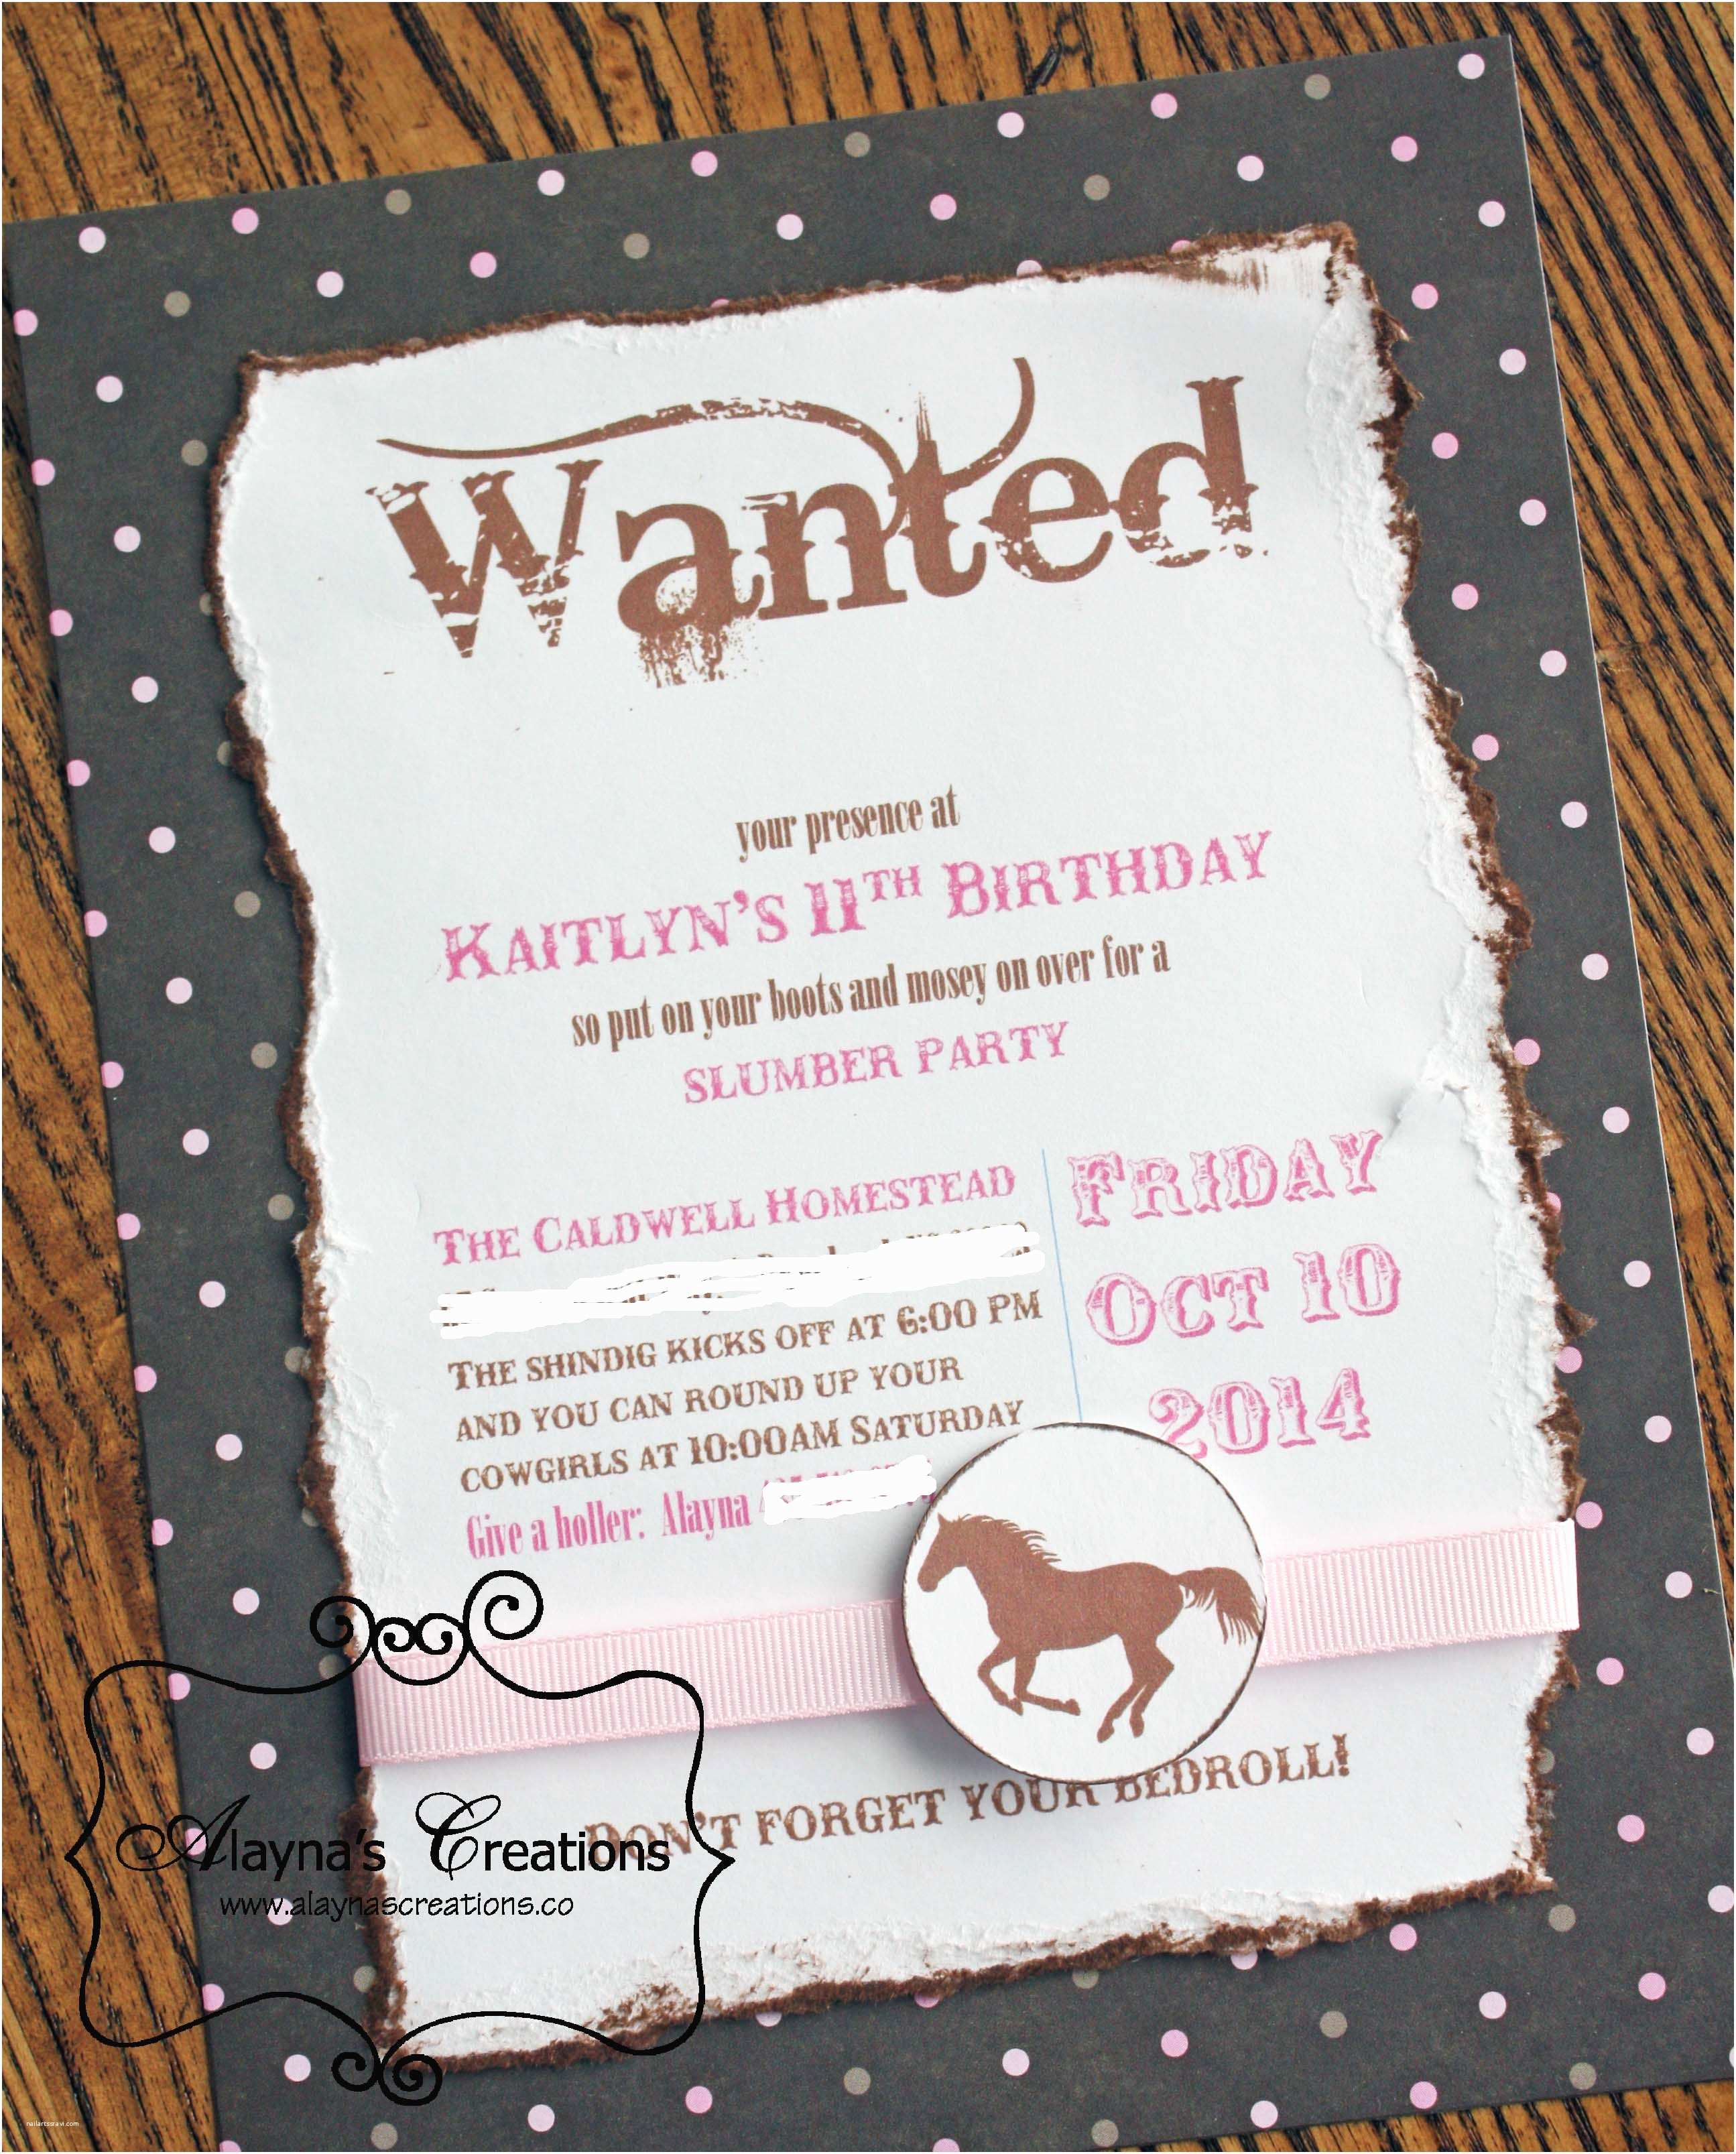 Horse Birthday Party Invitations Horse Slumber Party Diy Home Decor and Crafts